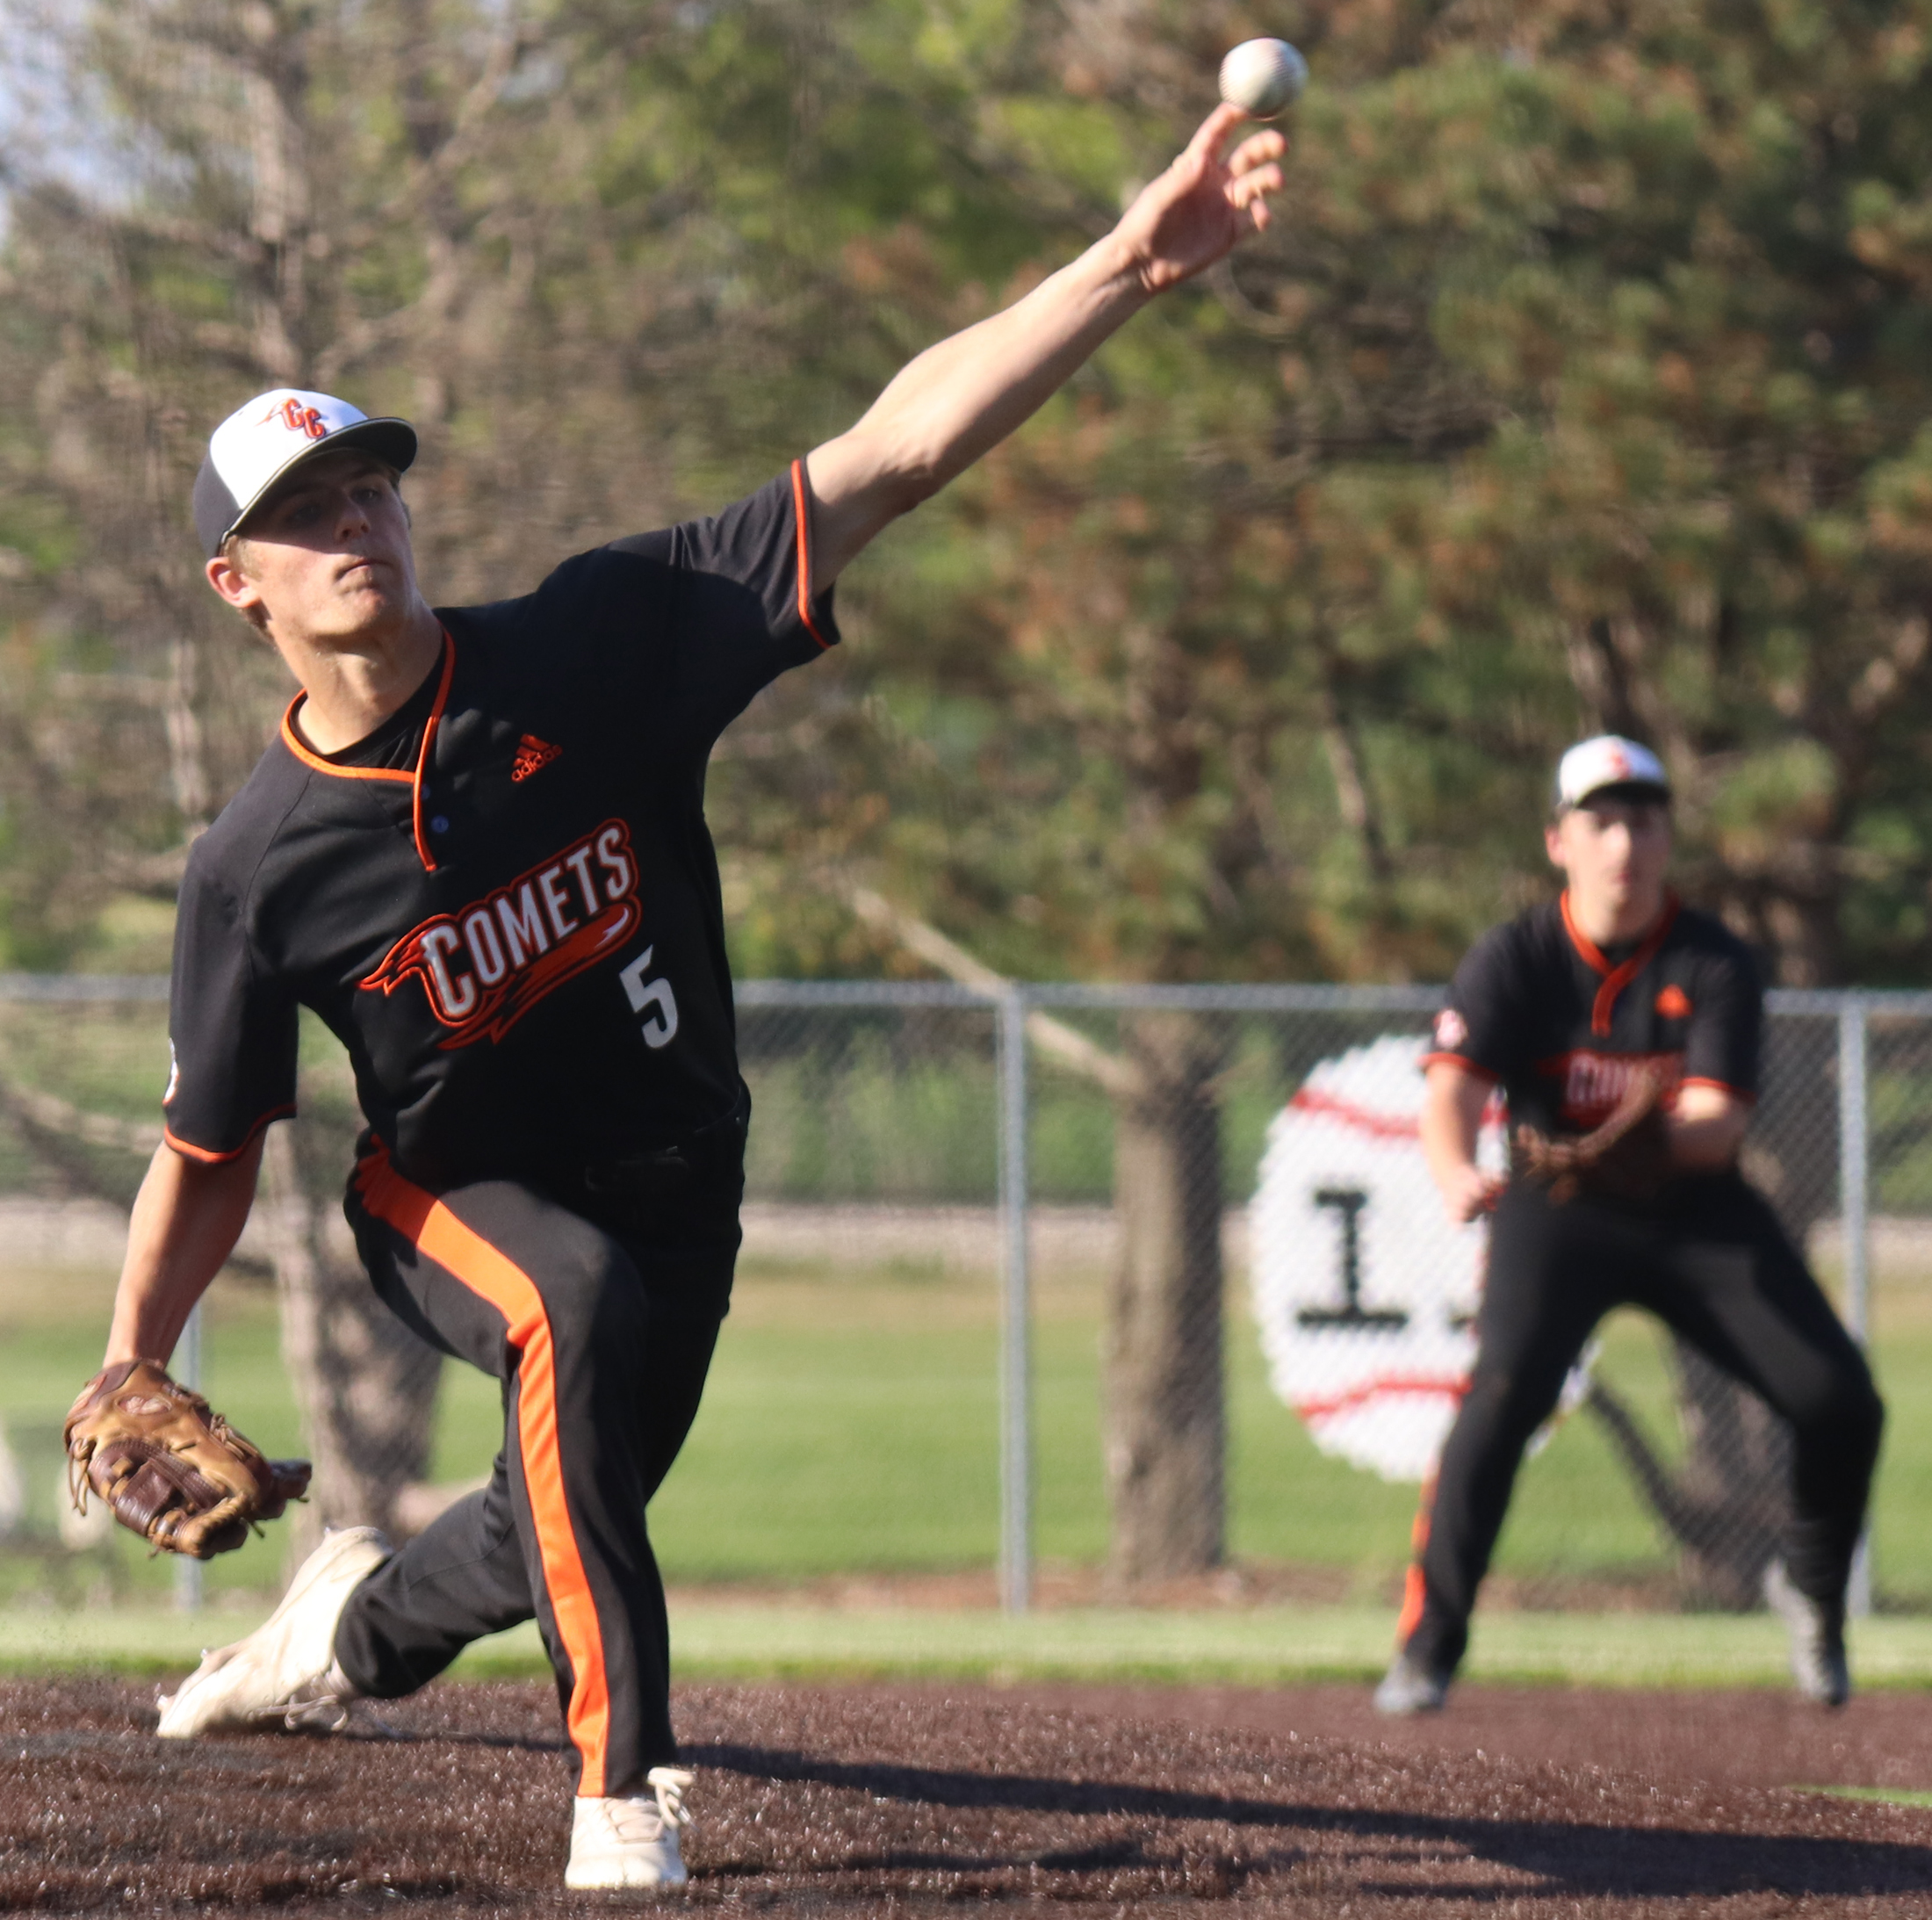 Comets split dramatic doubleheader with Go-Hawks